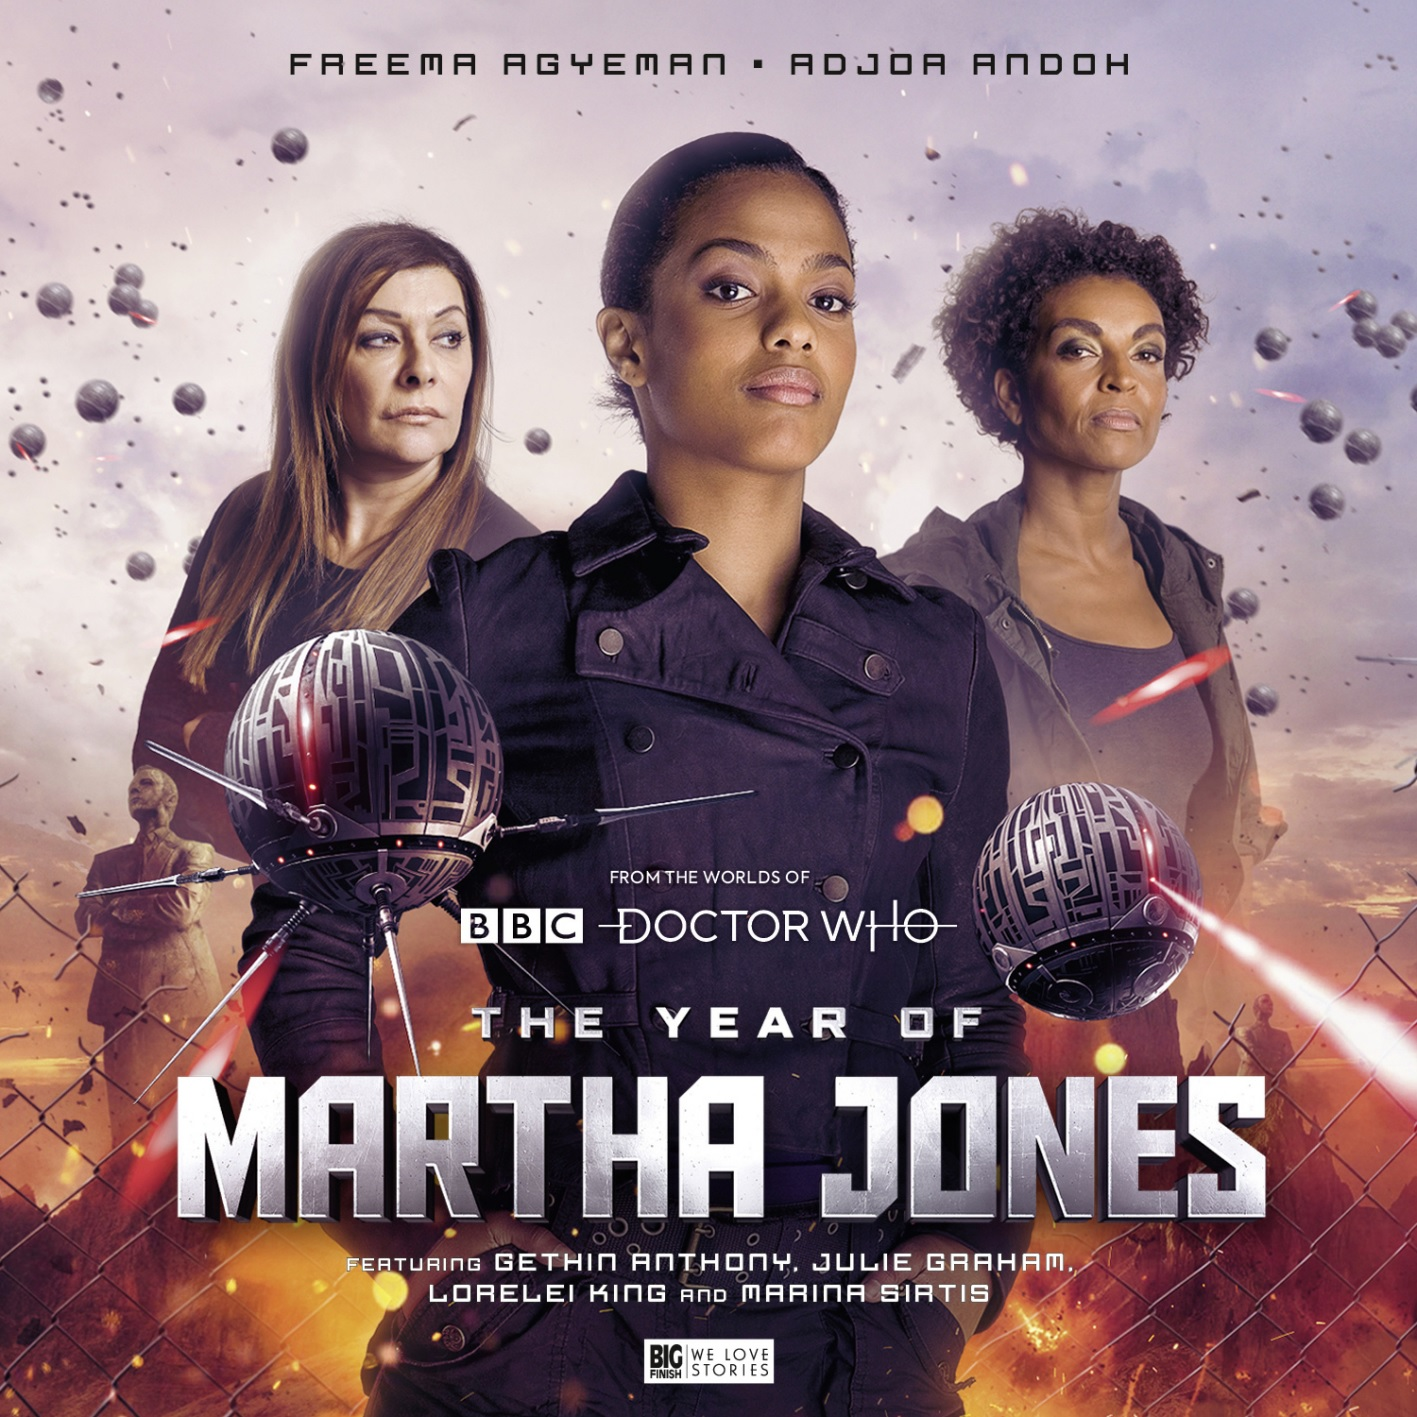 Big Finish Reveals More Details of The Year of Martha Jones